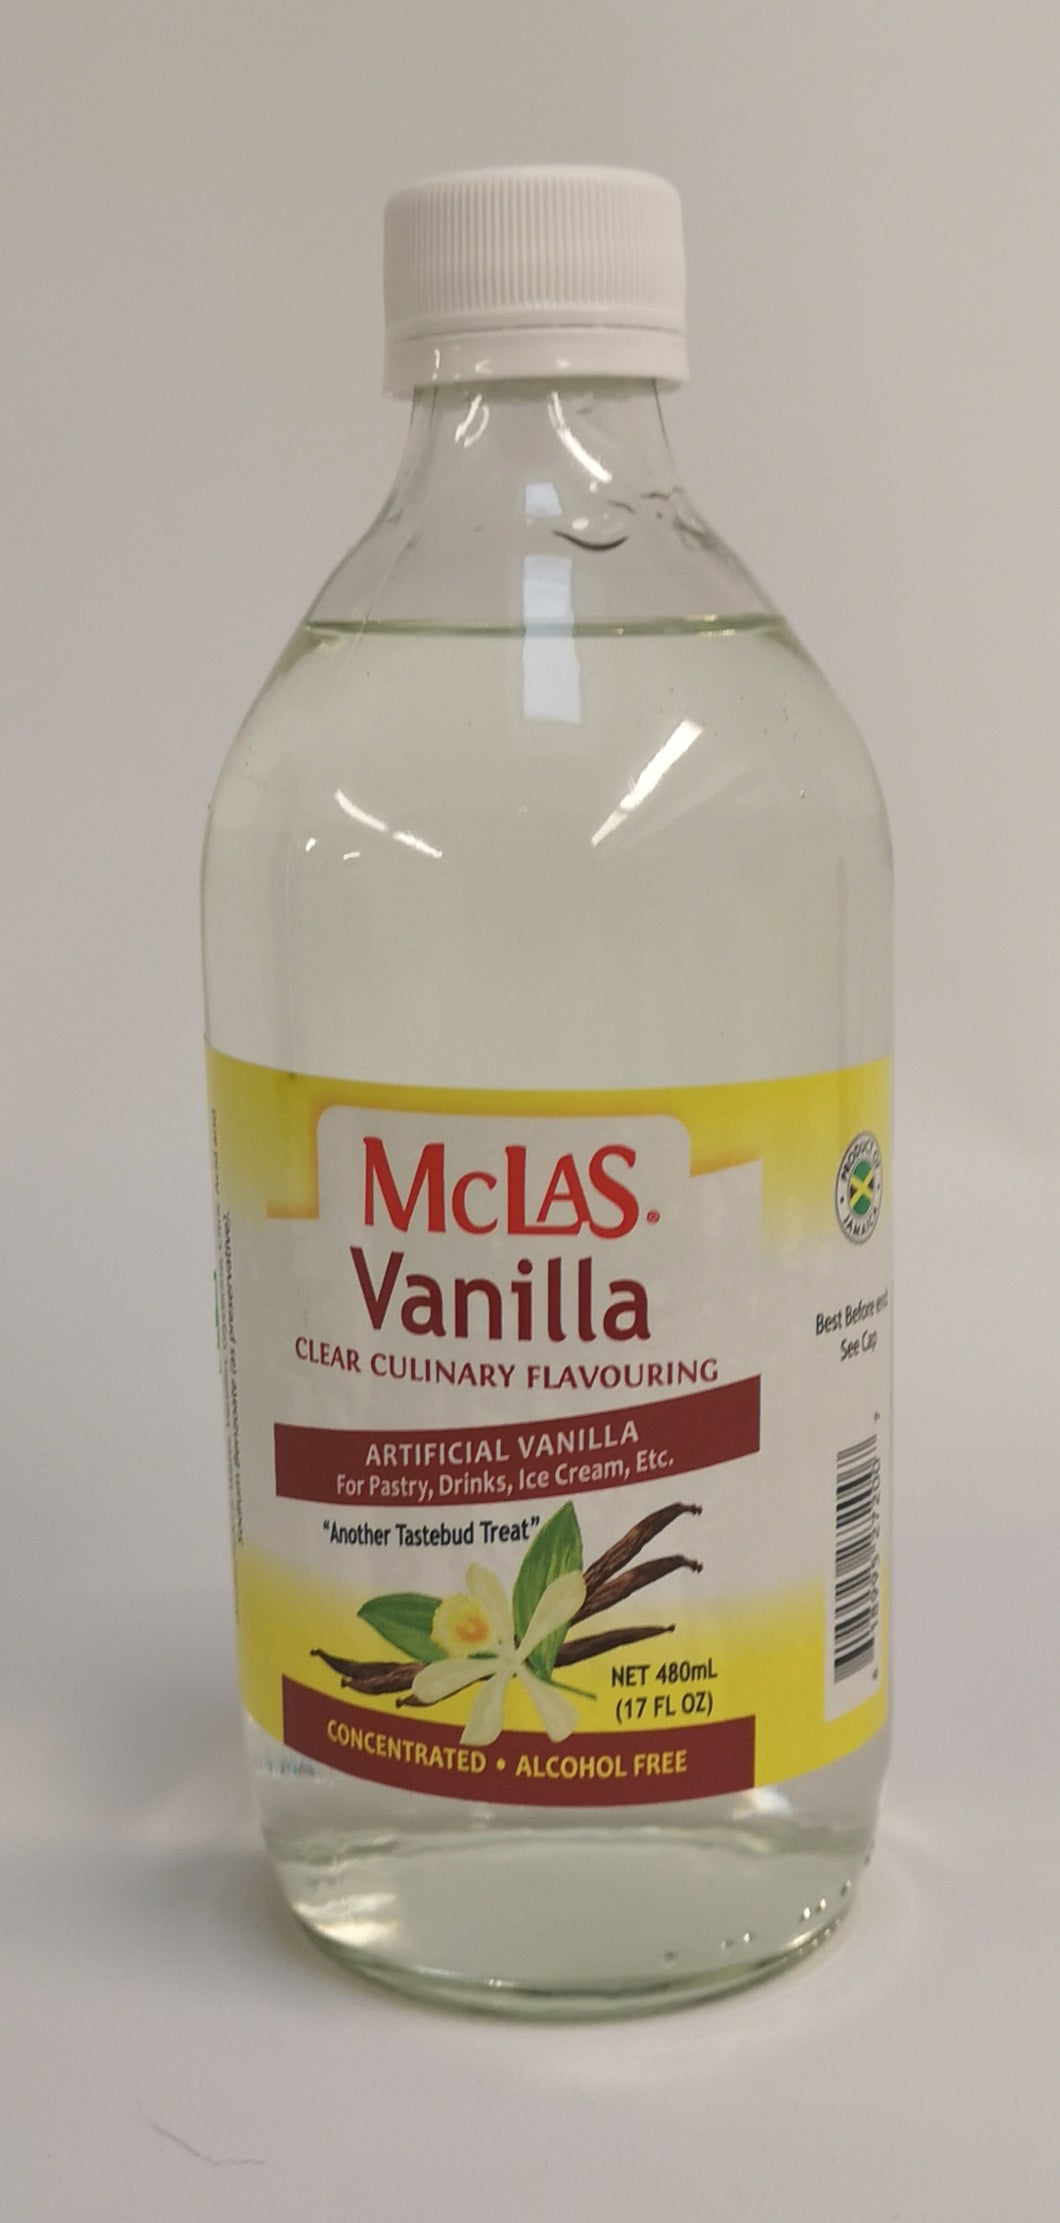 McLas Vanilla Clear Culinary Flavouring